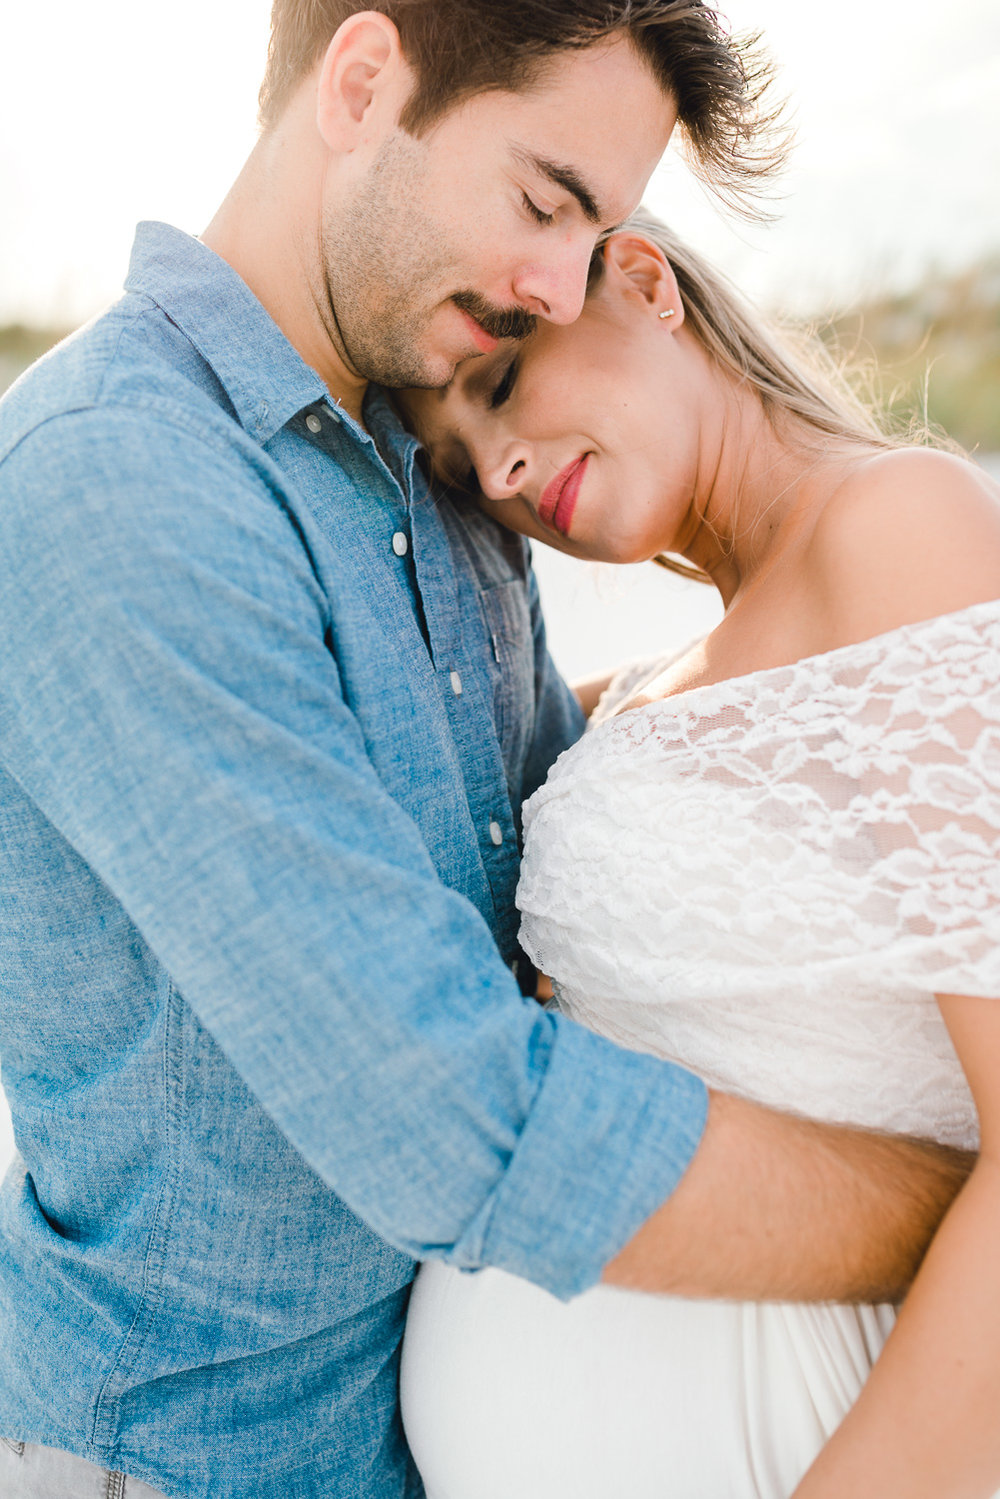 fort-walton-beach-newborn-photographers